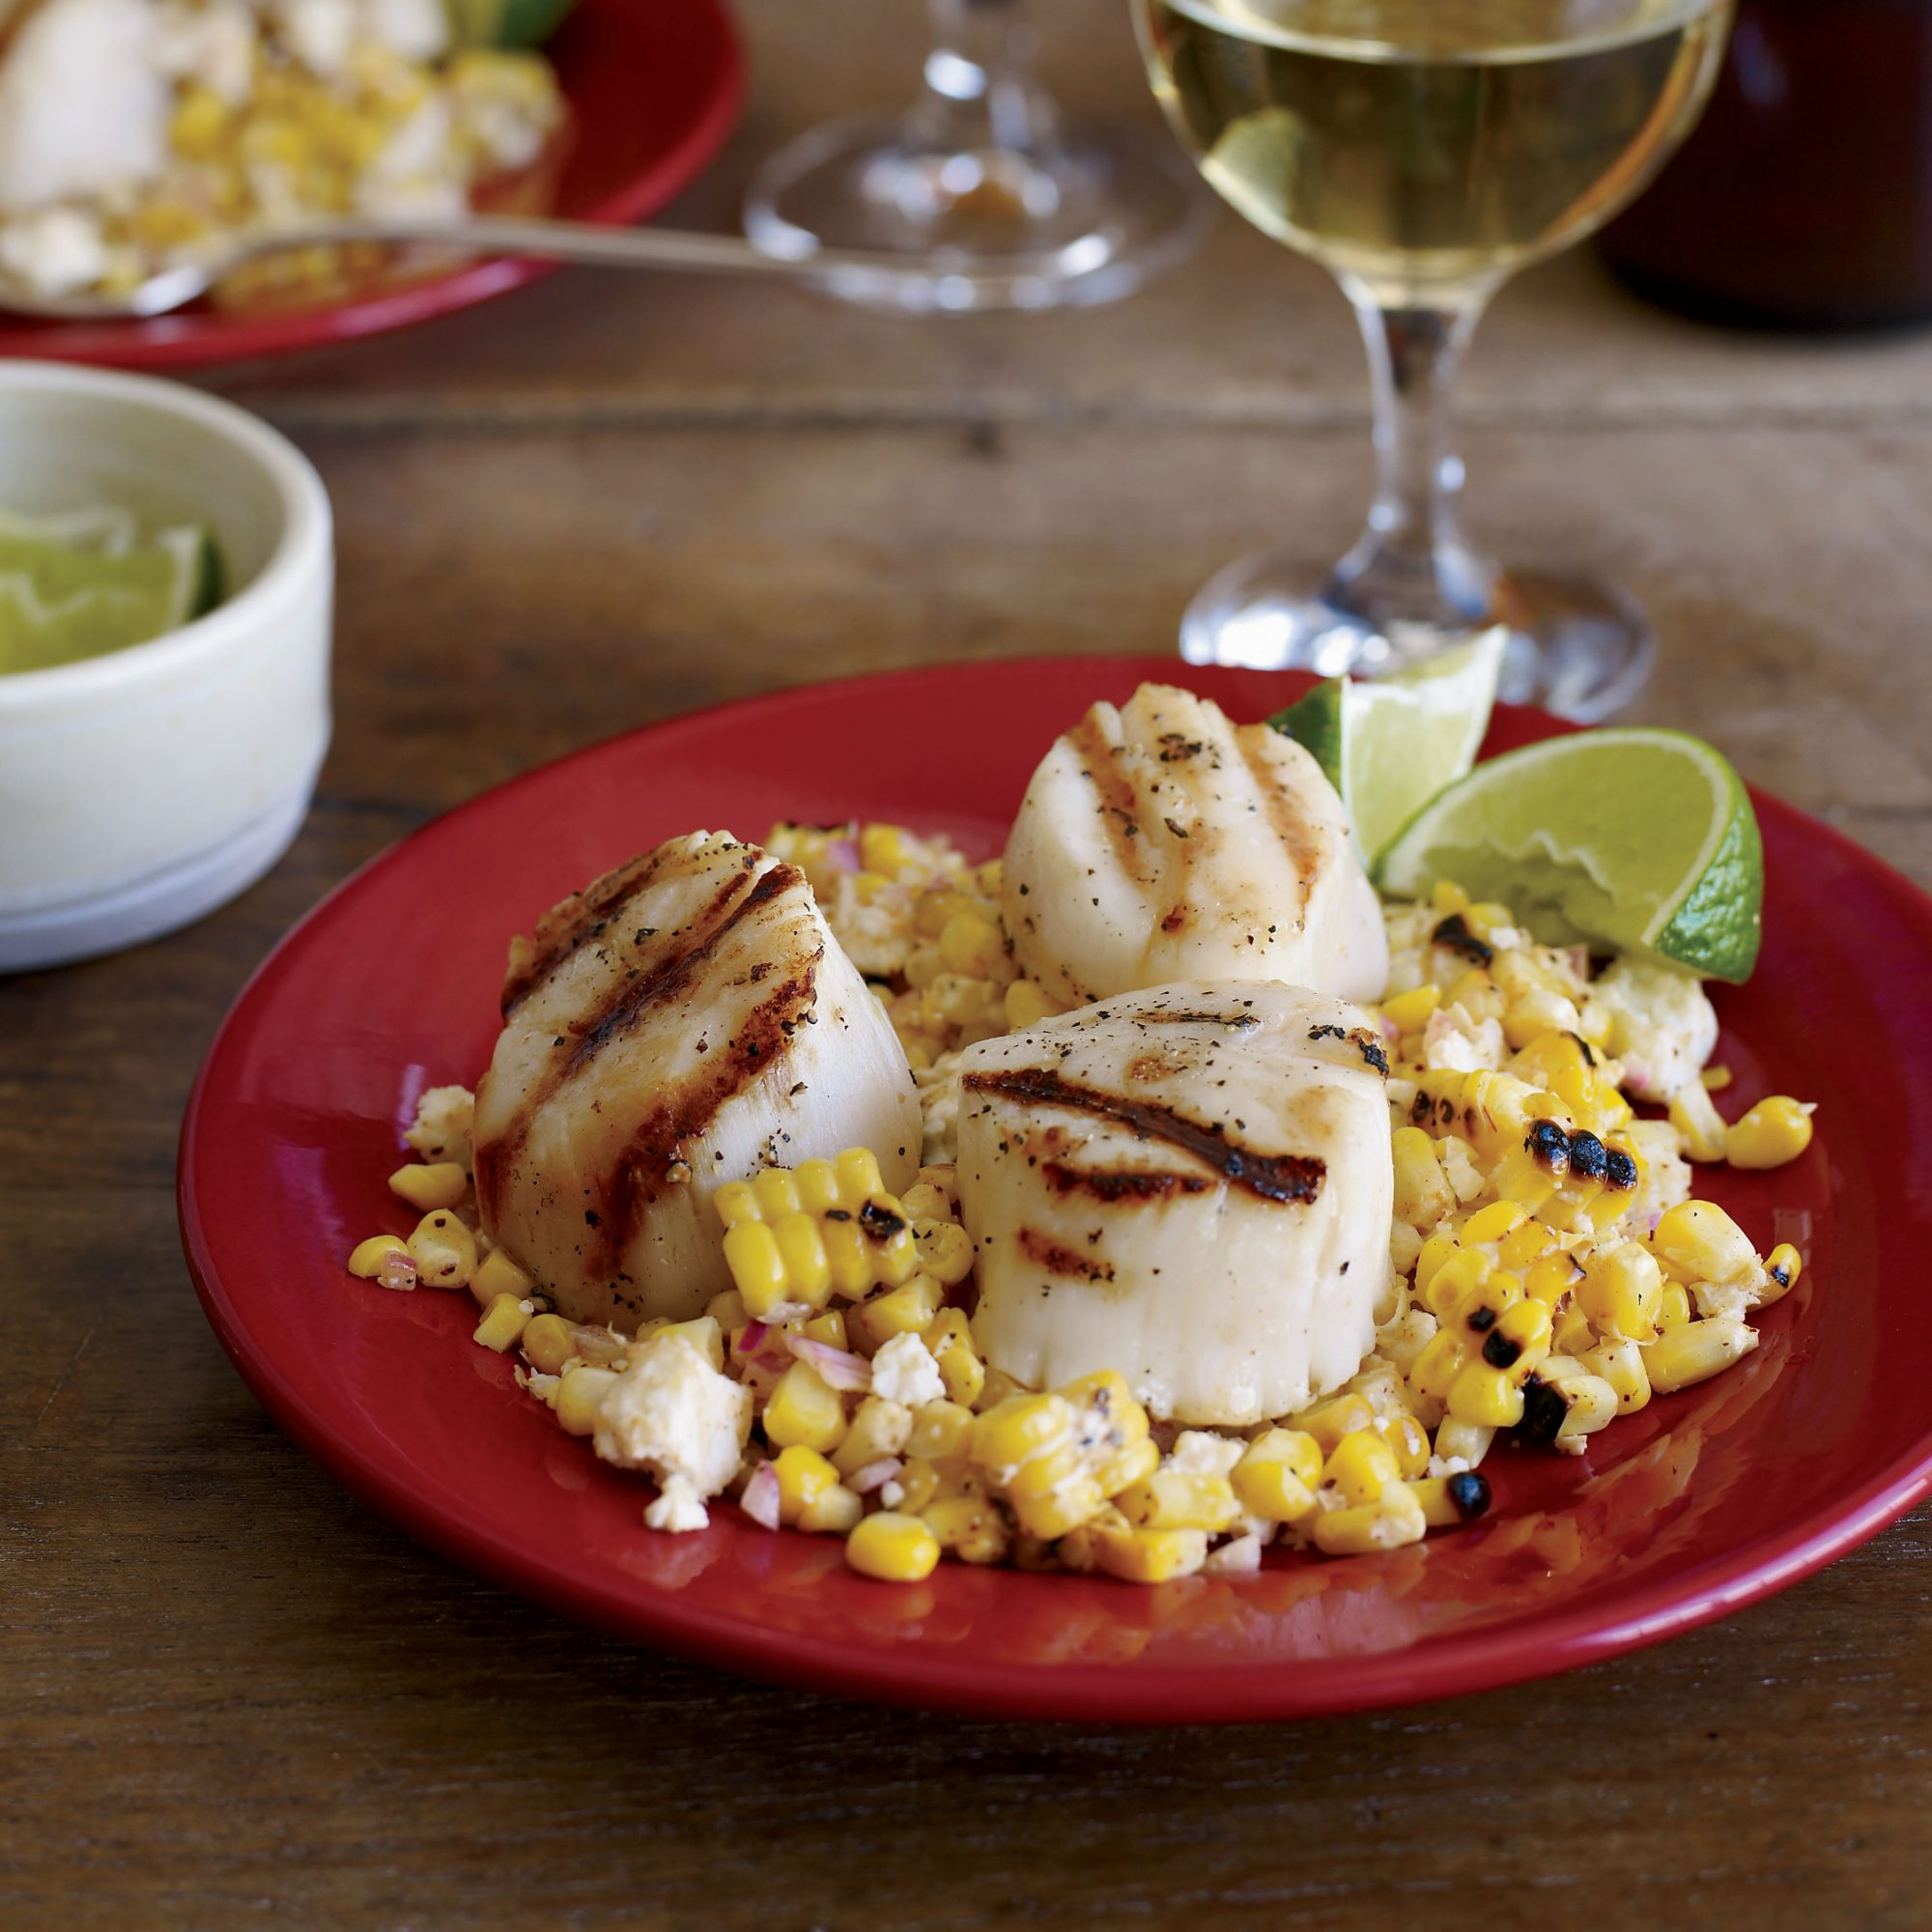 200806-r-grilled-scallops.jpg